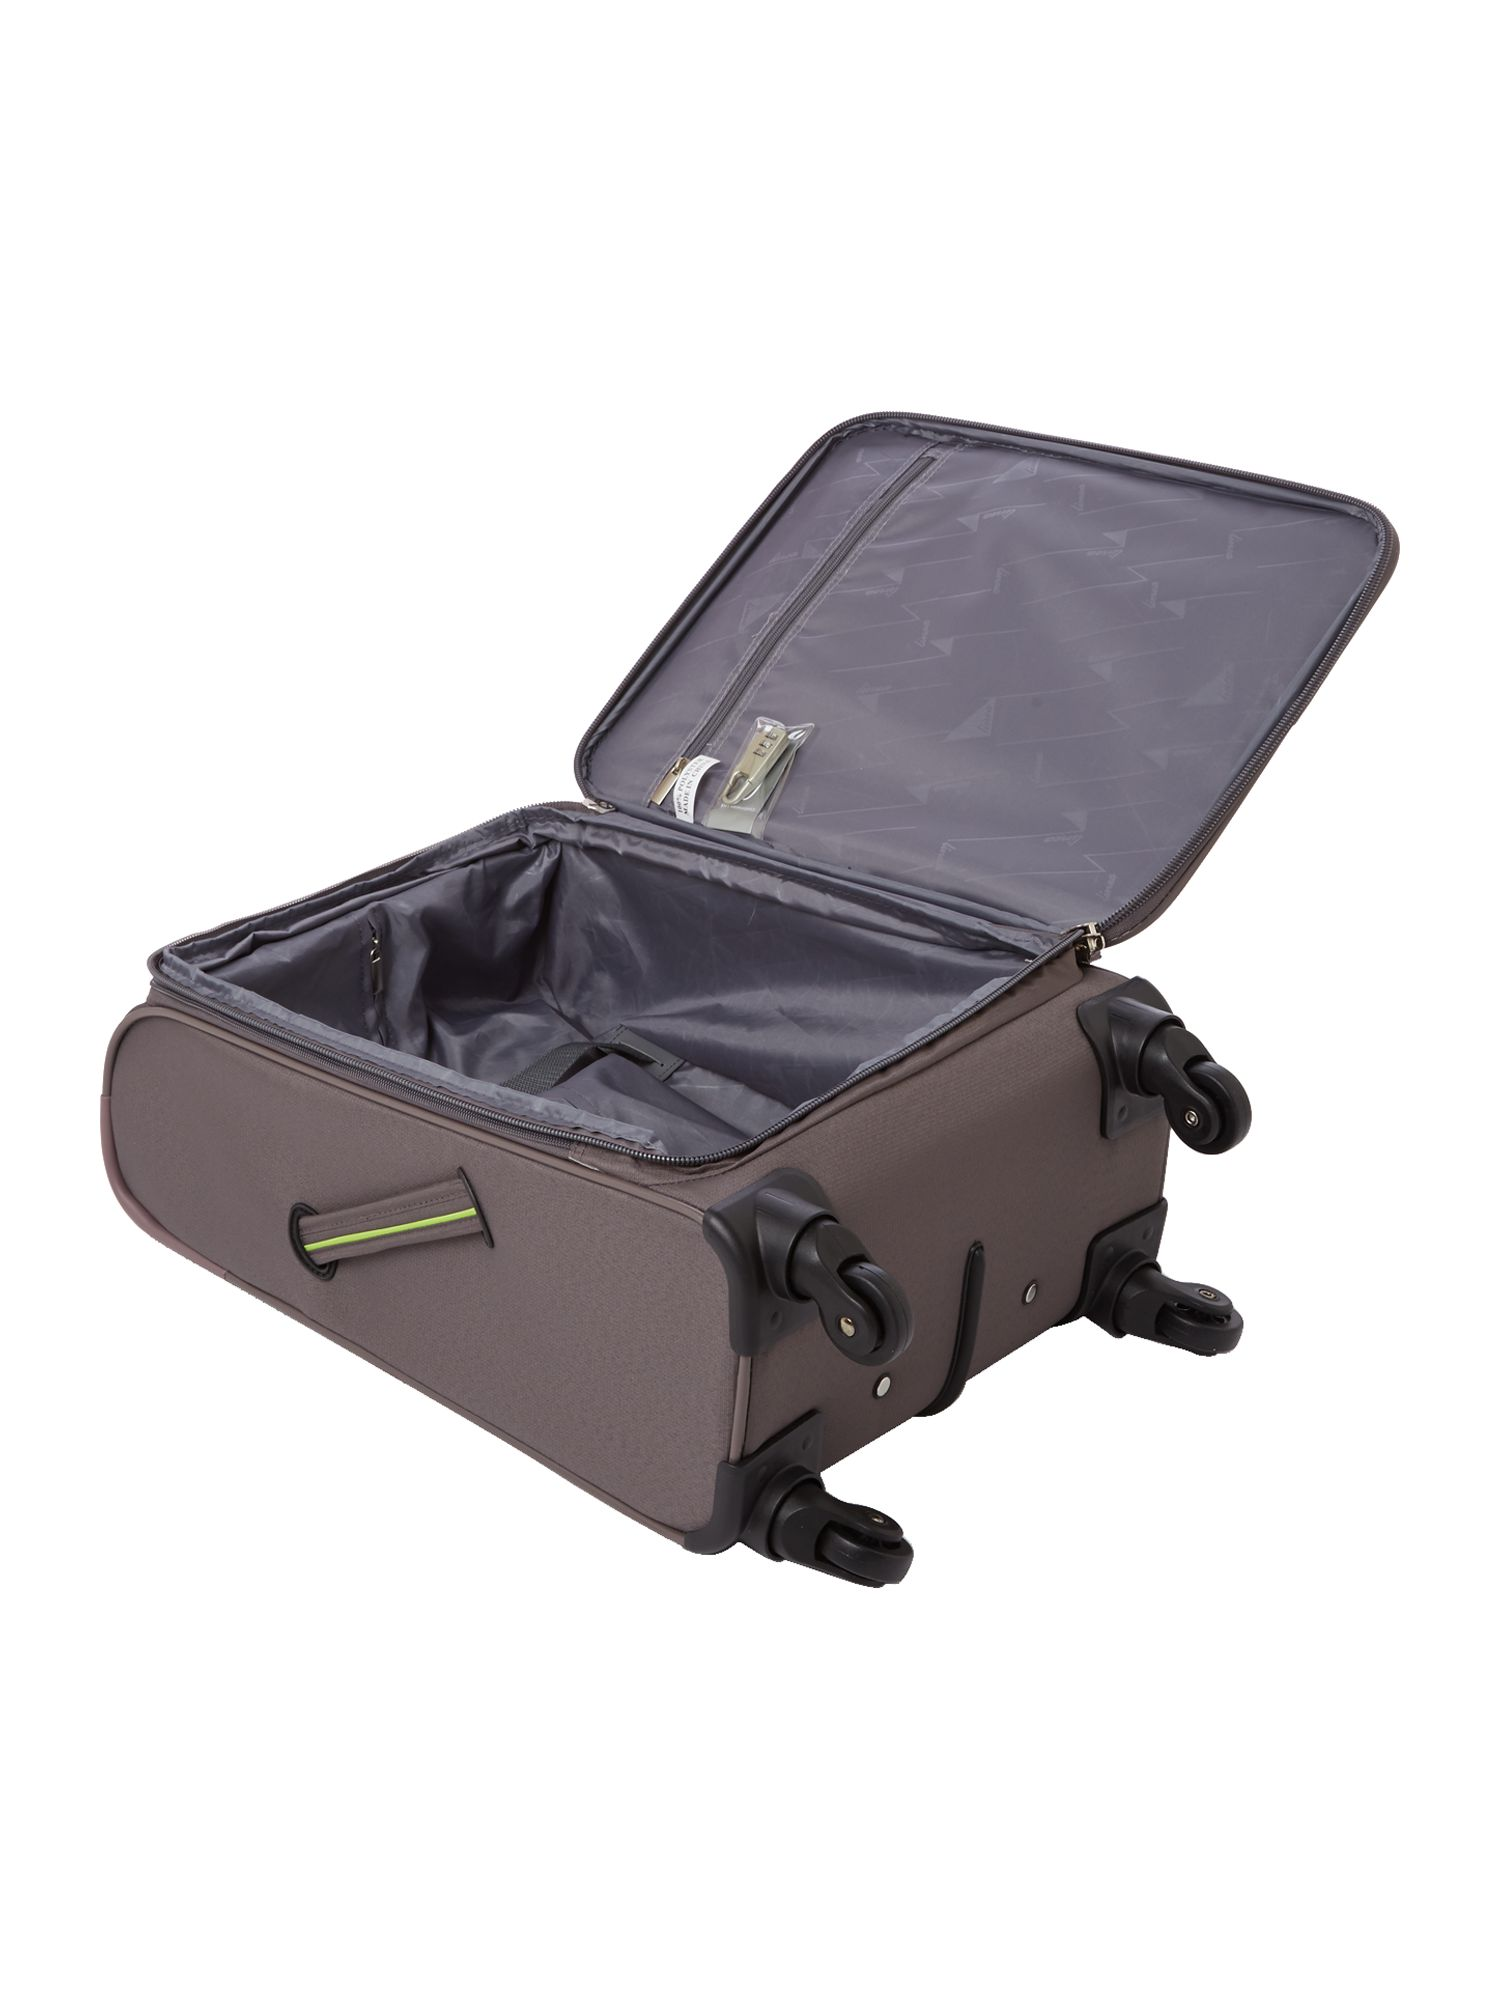 Hyperlite charcoal 4 wheel soft cabin suitcase